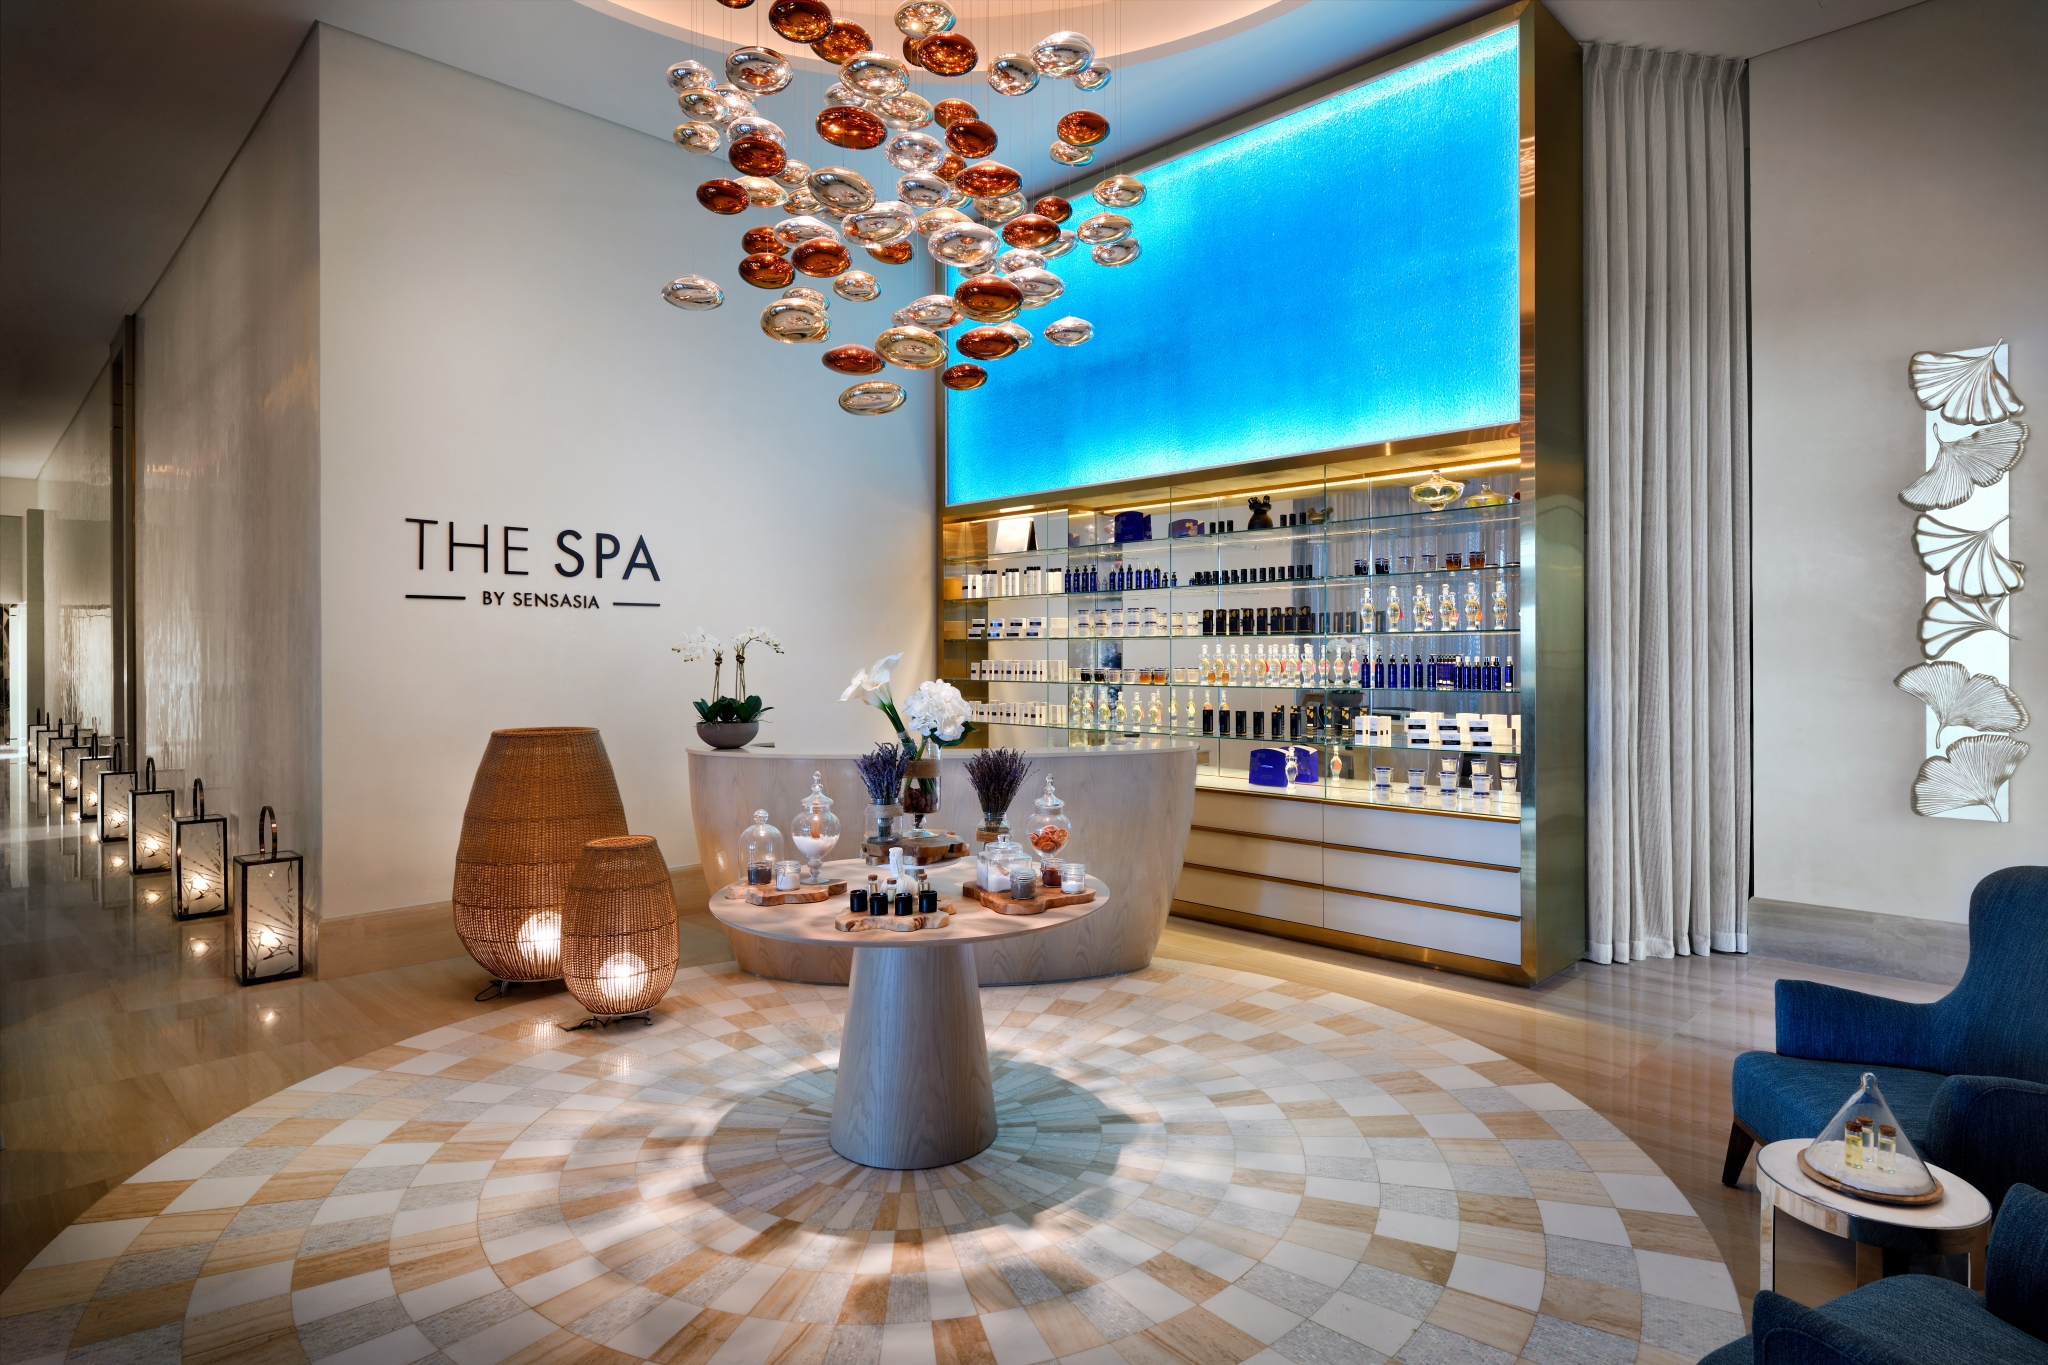 The Spa by Sensasia entrance tasting bar